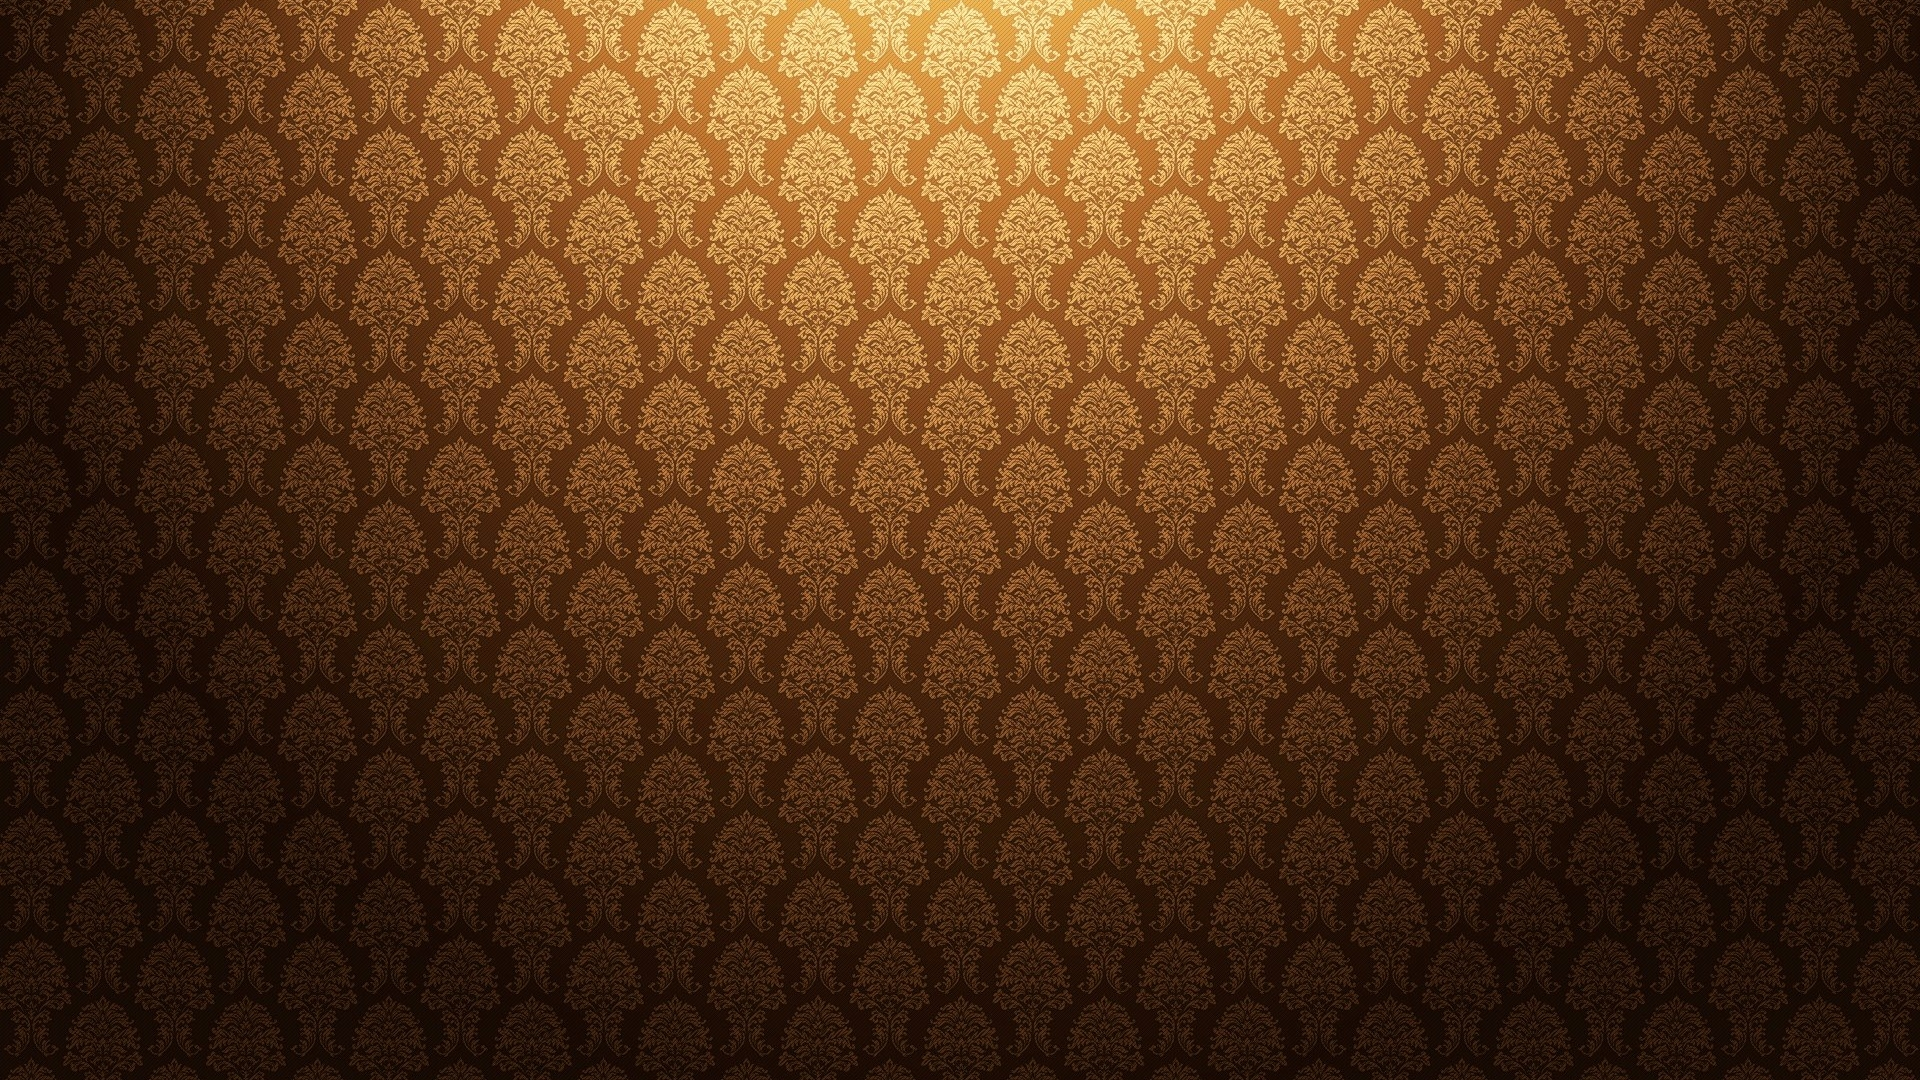 retro colorful background hd - photo #40